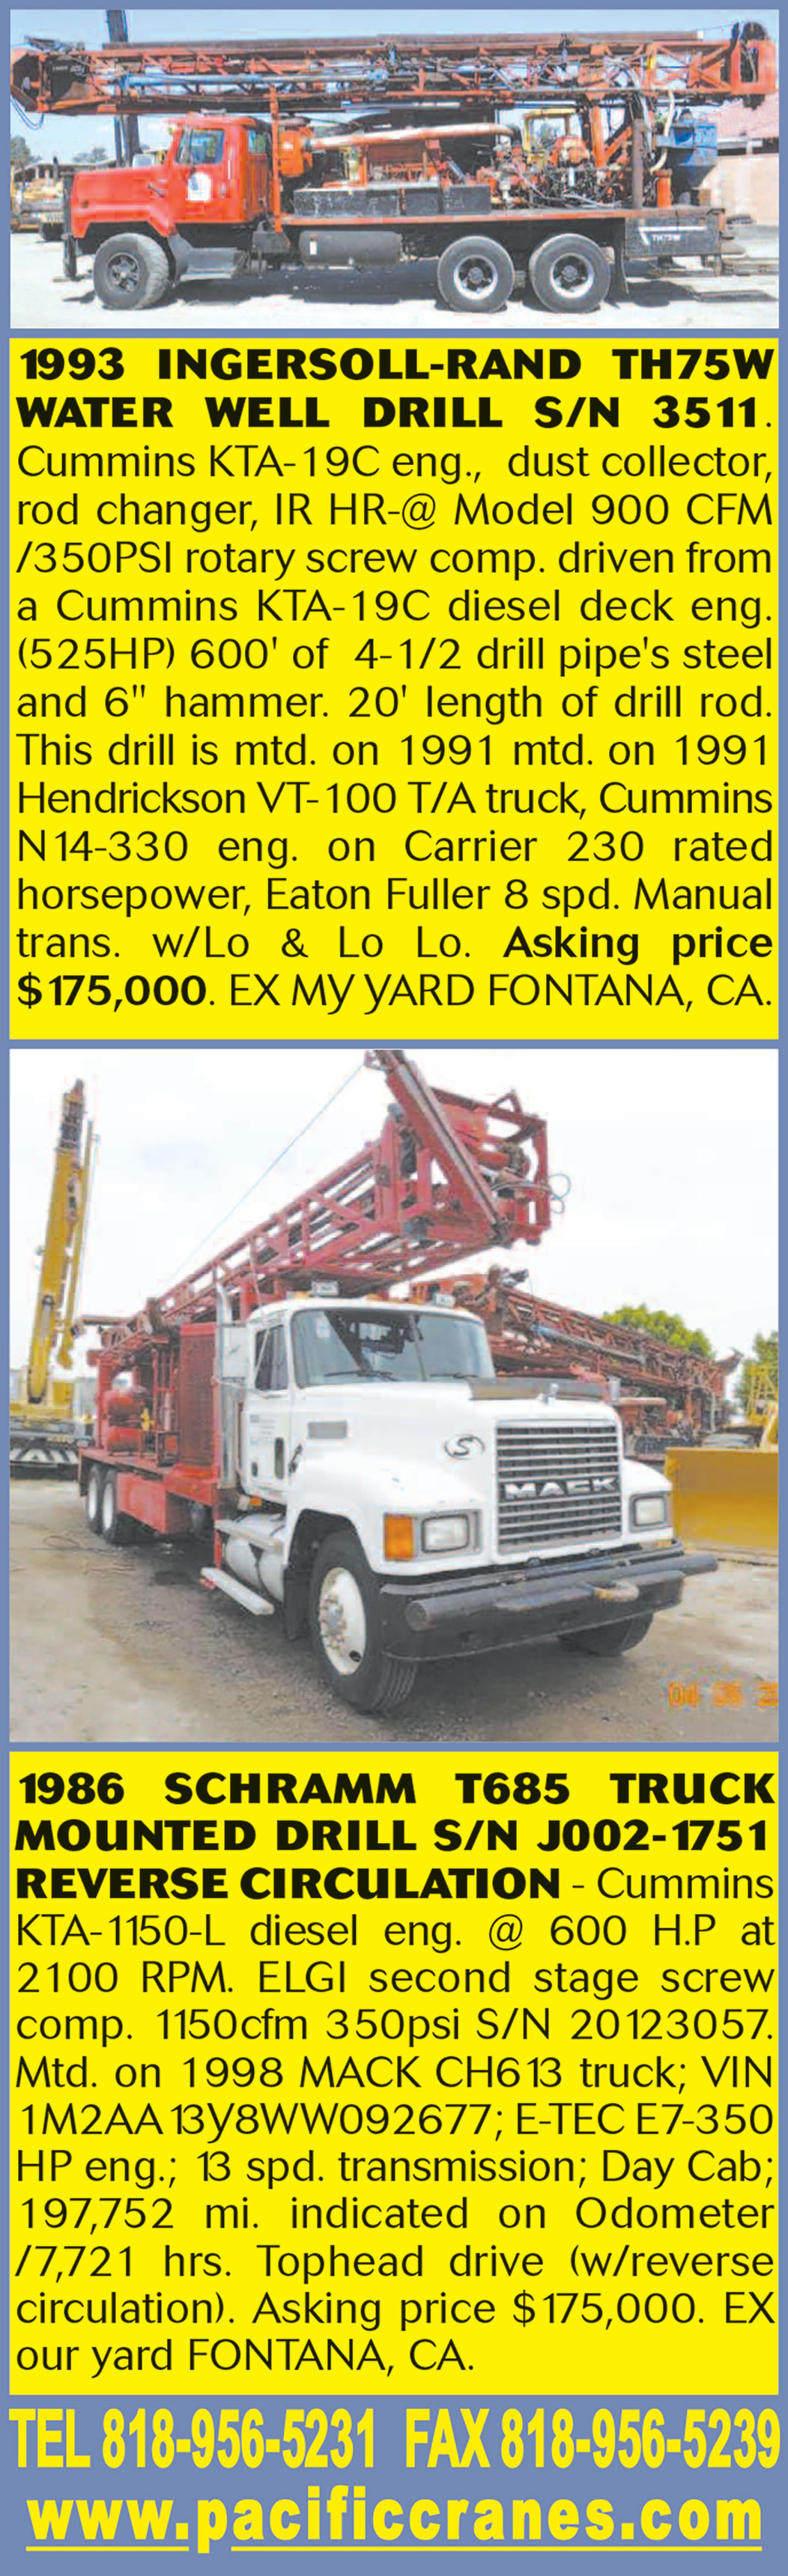 1993 INGERSOLL-RAND TH75W WATER WELL DRILL RIG & 1986 SCHRAMM T685 TRUCK MOUNTED DRILL RIG